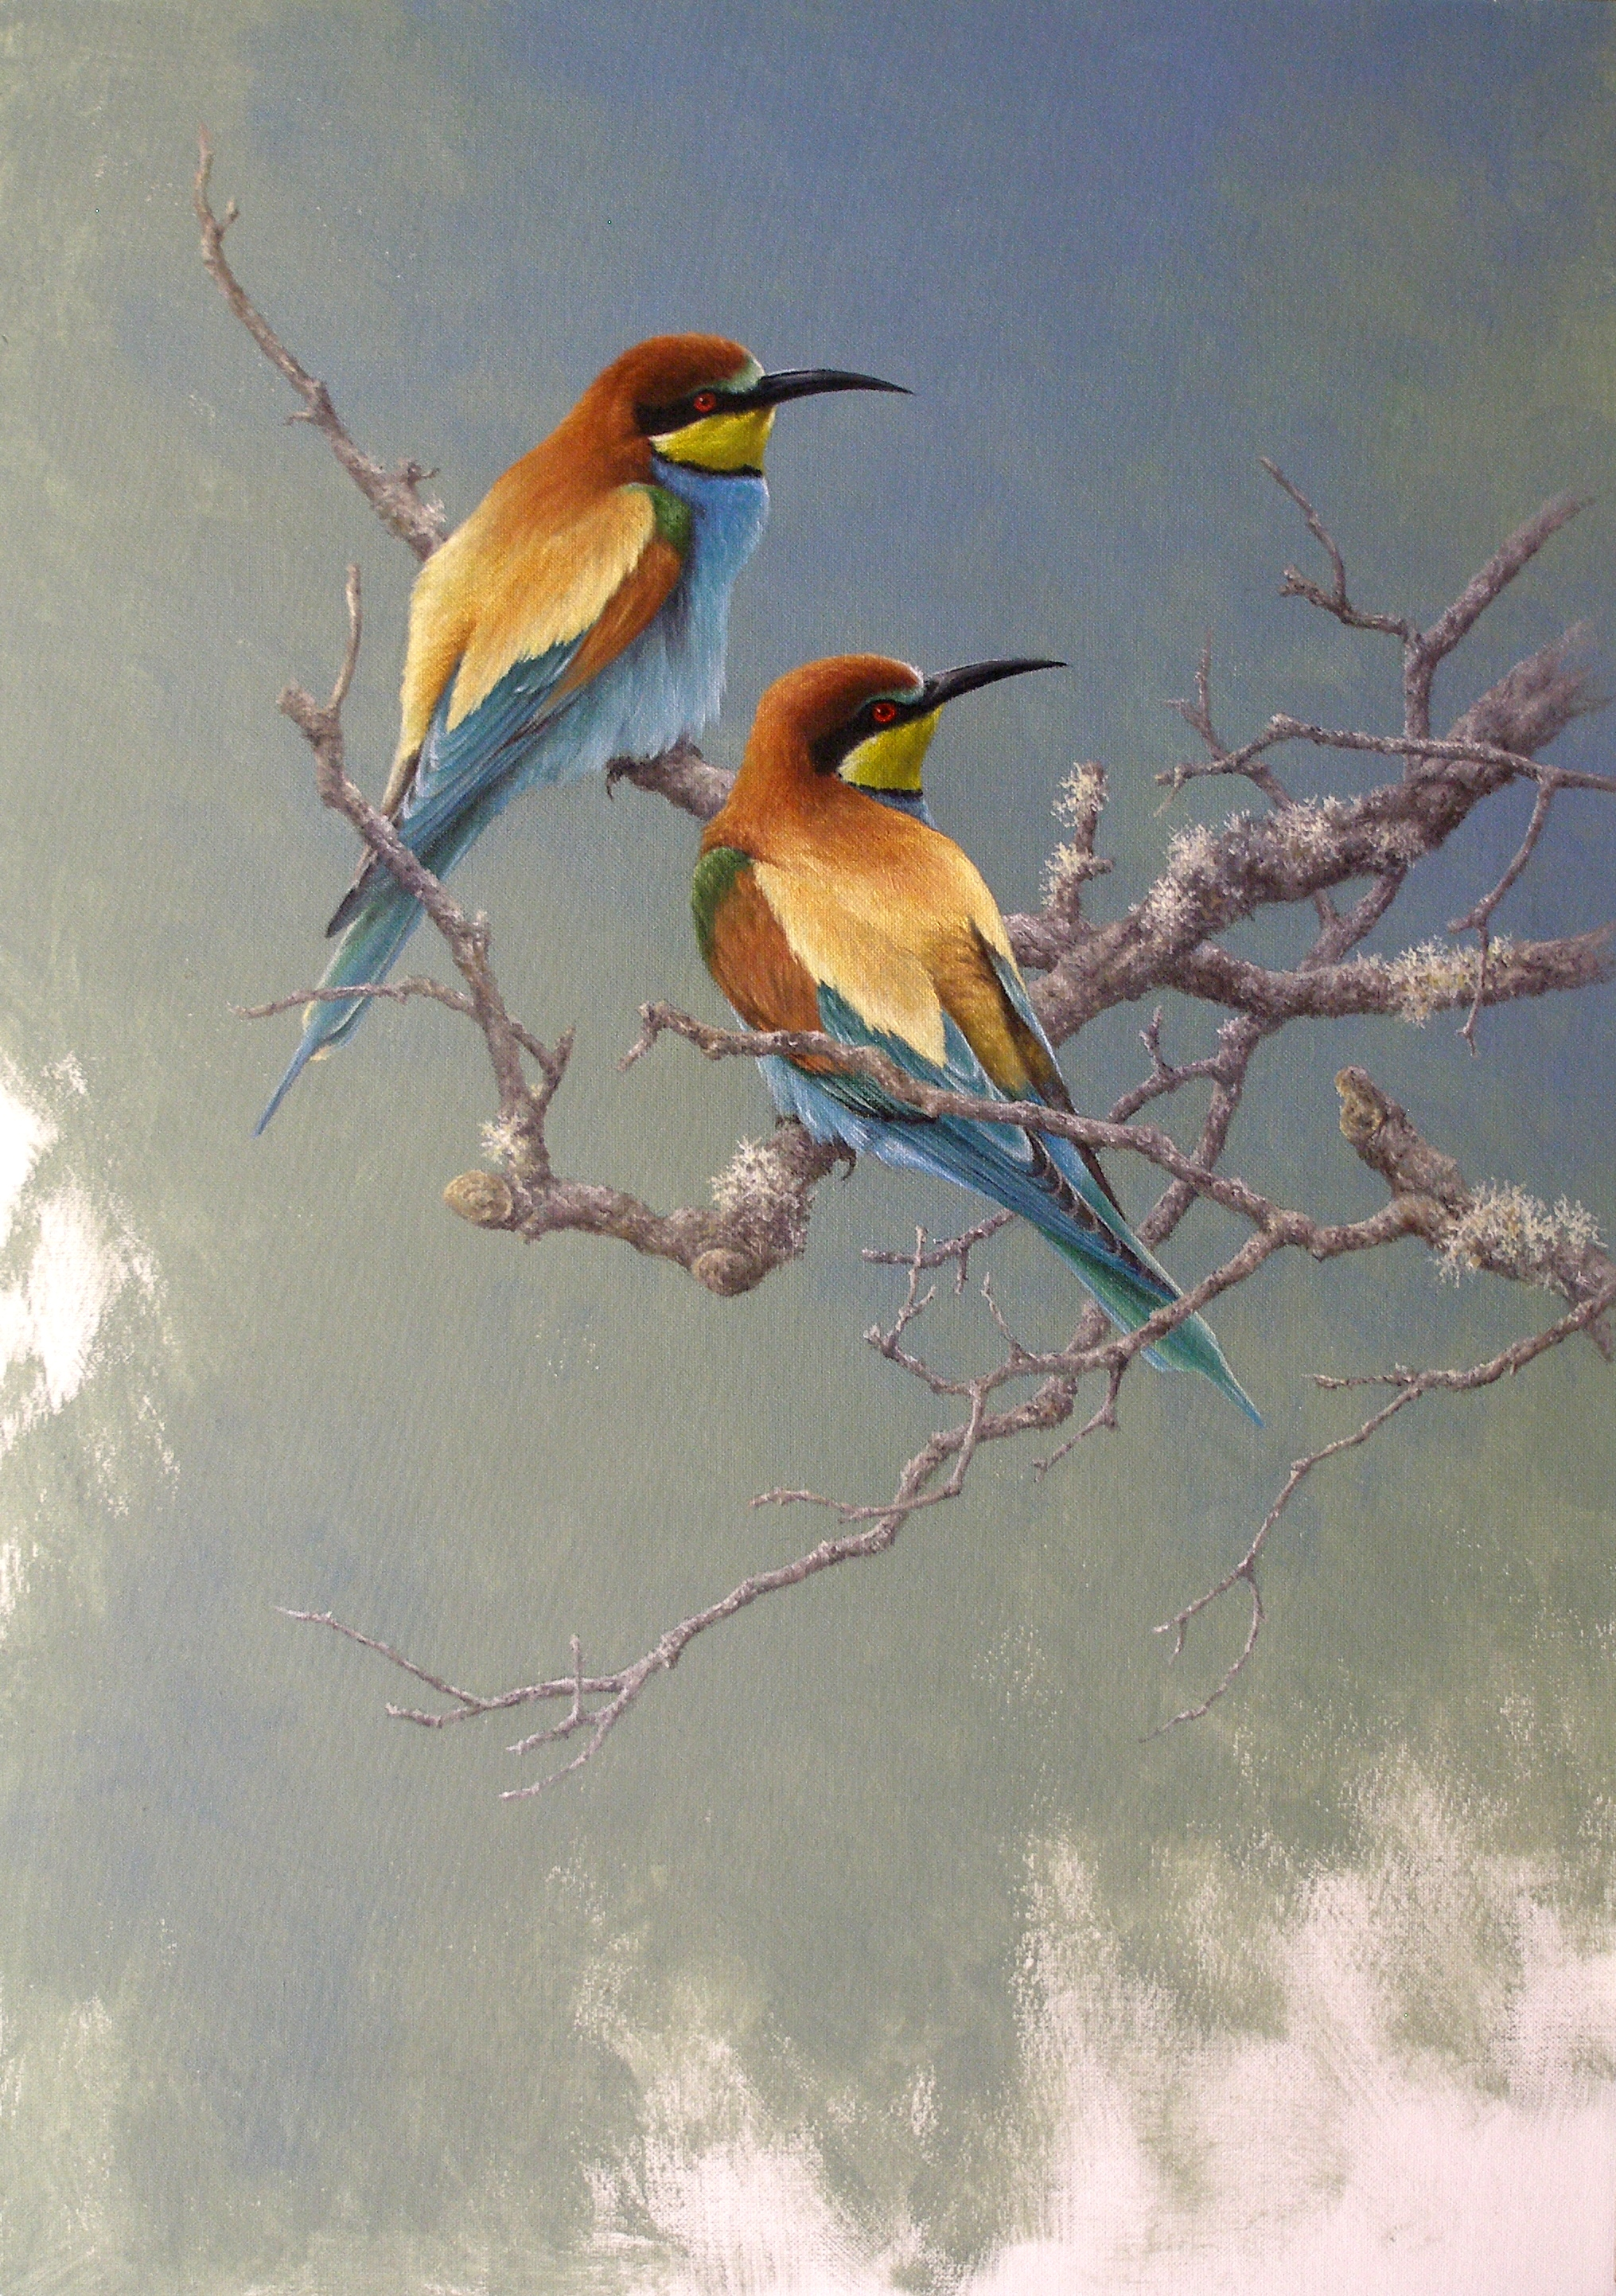 an analysis of the story the bee eater Selected bibliography birdlife international 2009 white j, d ksepka, a smith, m norell 2009 combined phylogenetic analysis of a new north american fossil species confirms widespread eocene molecular phylogenetics of the bee-eaters (aves: meropidae) based on nuclear and.